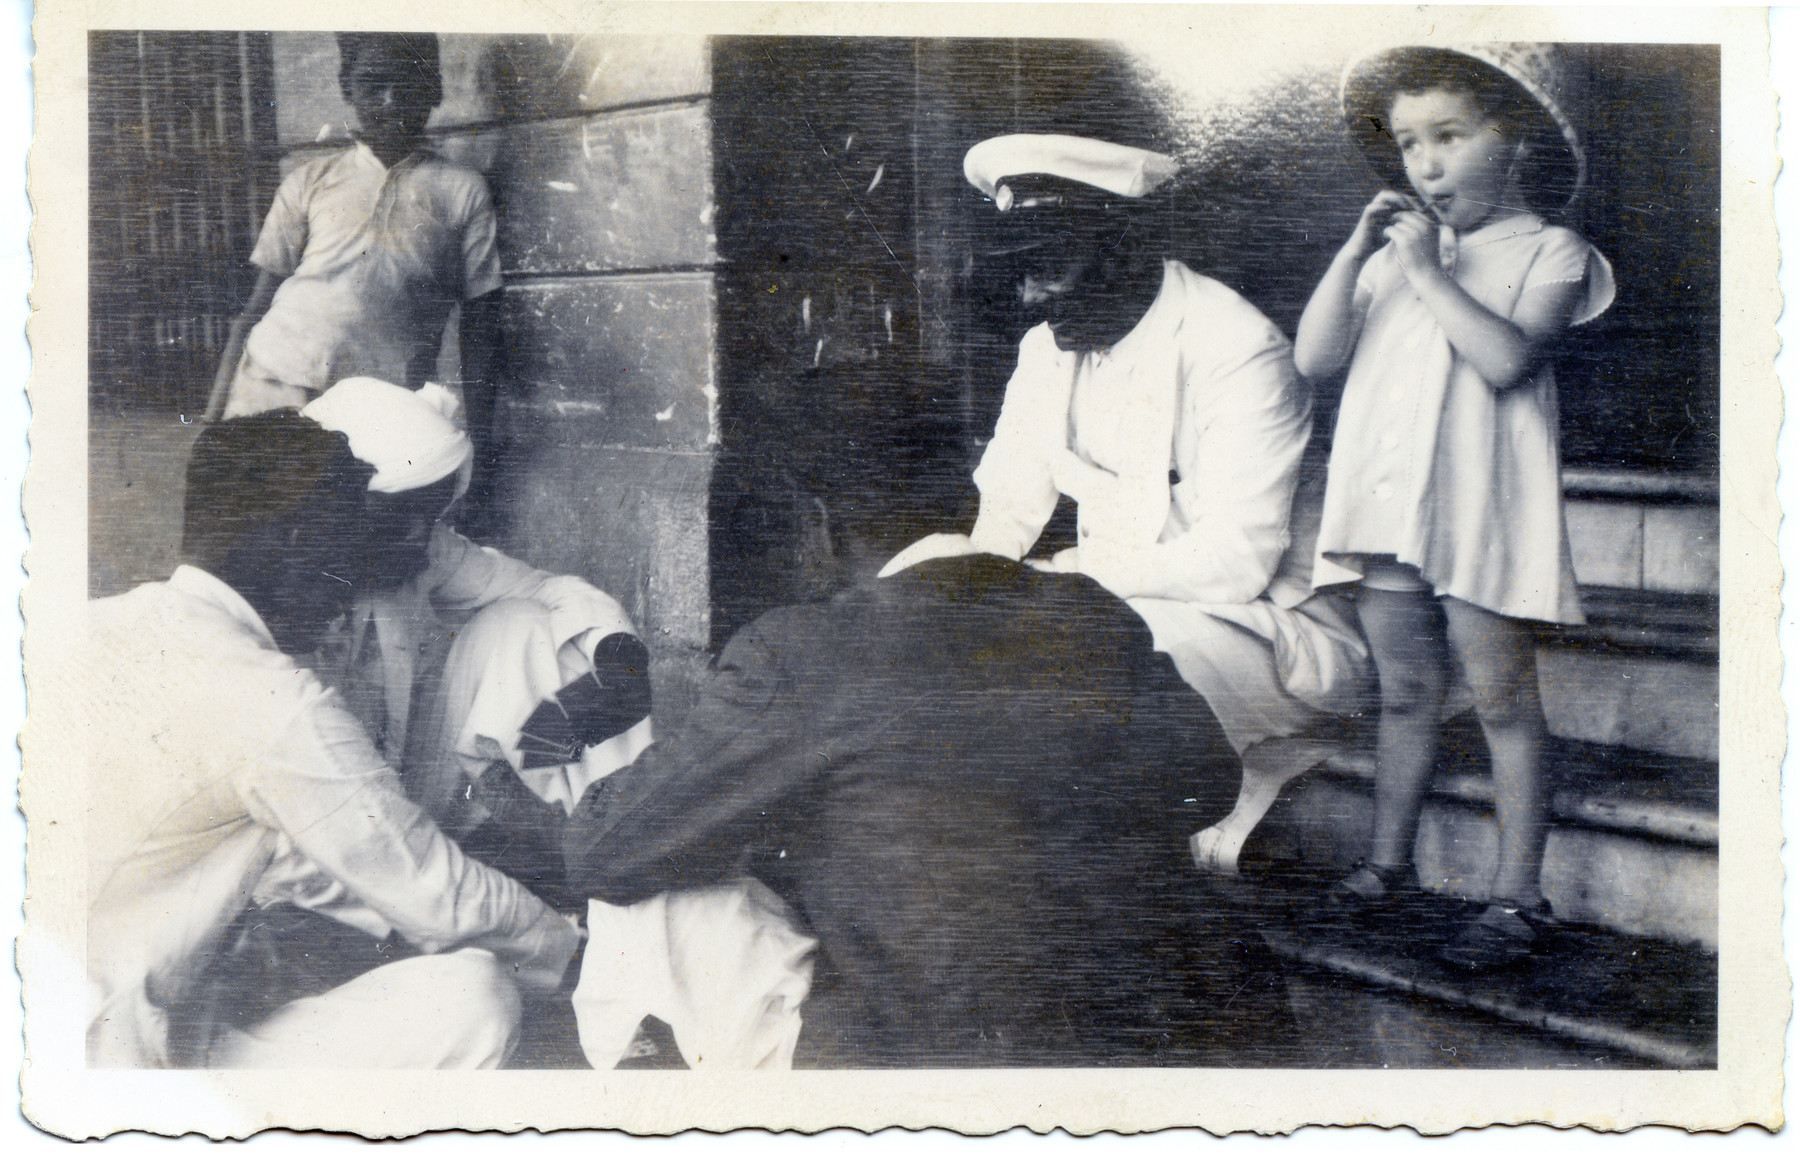 Joanna Klein watches a group of Indian men play cards while stopping in Bombay en route to America.